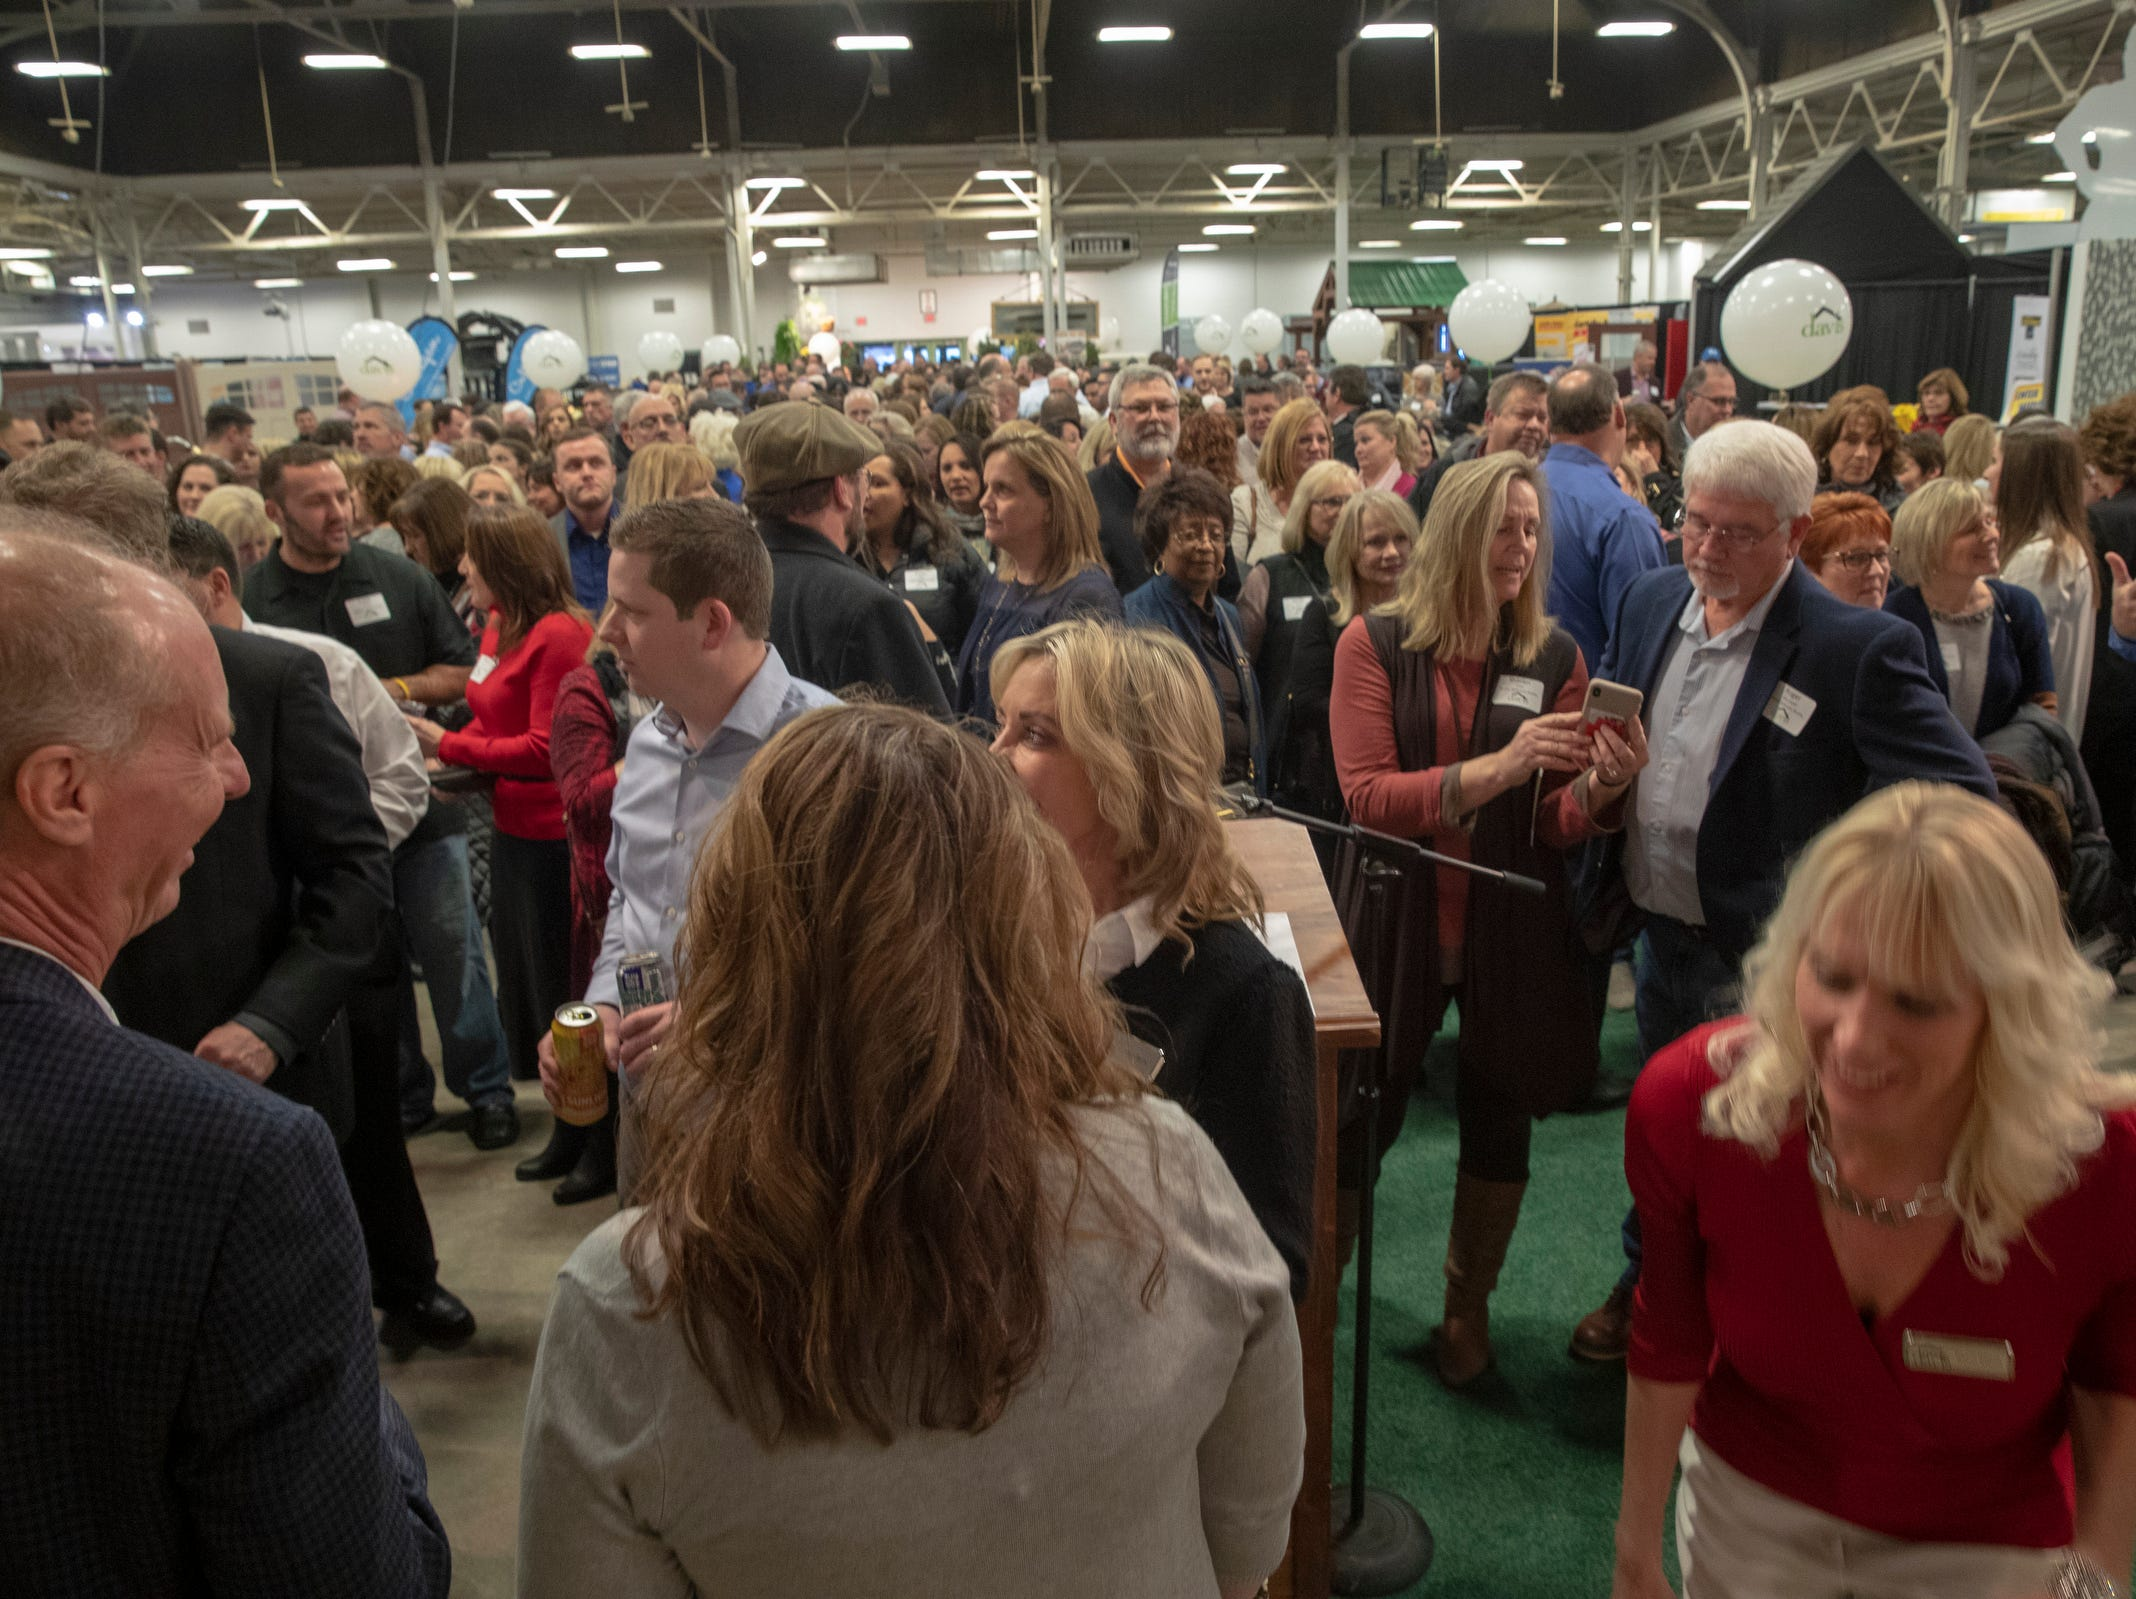 Realtors, designers and staff wait for the opening of the Centerpiece Home at the Indianapolis Home Show, Indiana State Fairgrounds, Indianapolis, Thursday, Jan. 17, 2018. The home, which is open through January 27 was built by Davis Homes, with an interior designed by Shelby Upchurch of Luxe Home Interiors, and landscaping by Calvin Landscape.